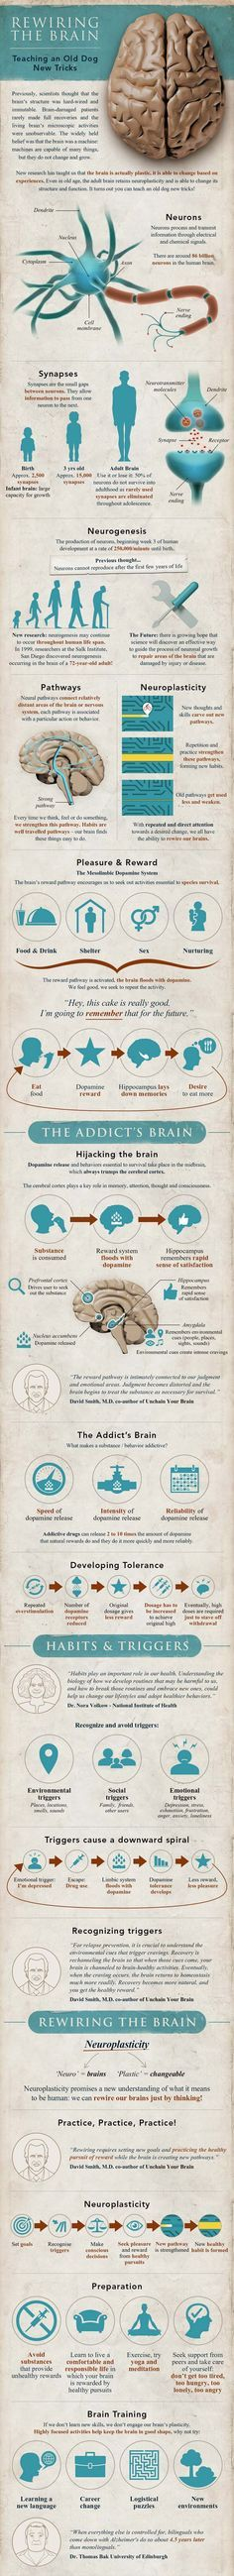 how to create new neural pathways